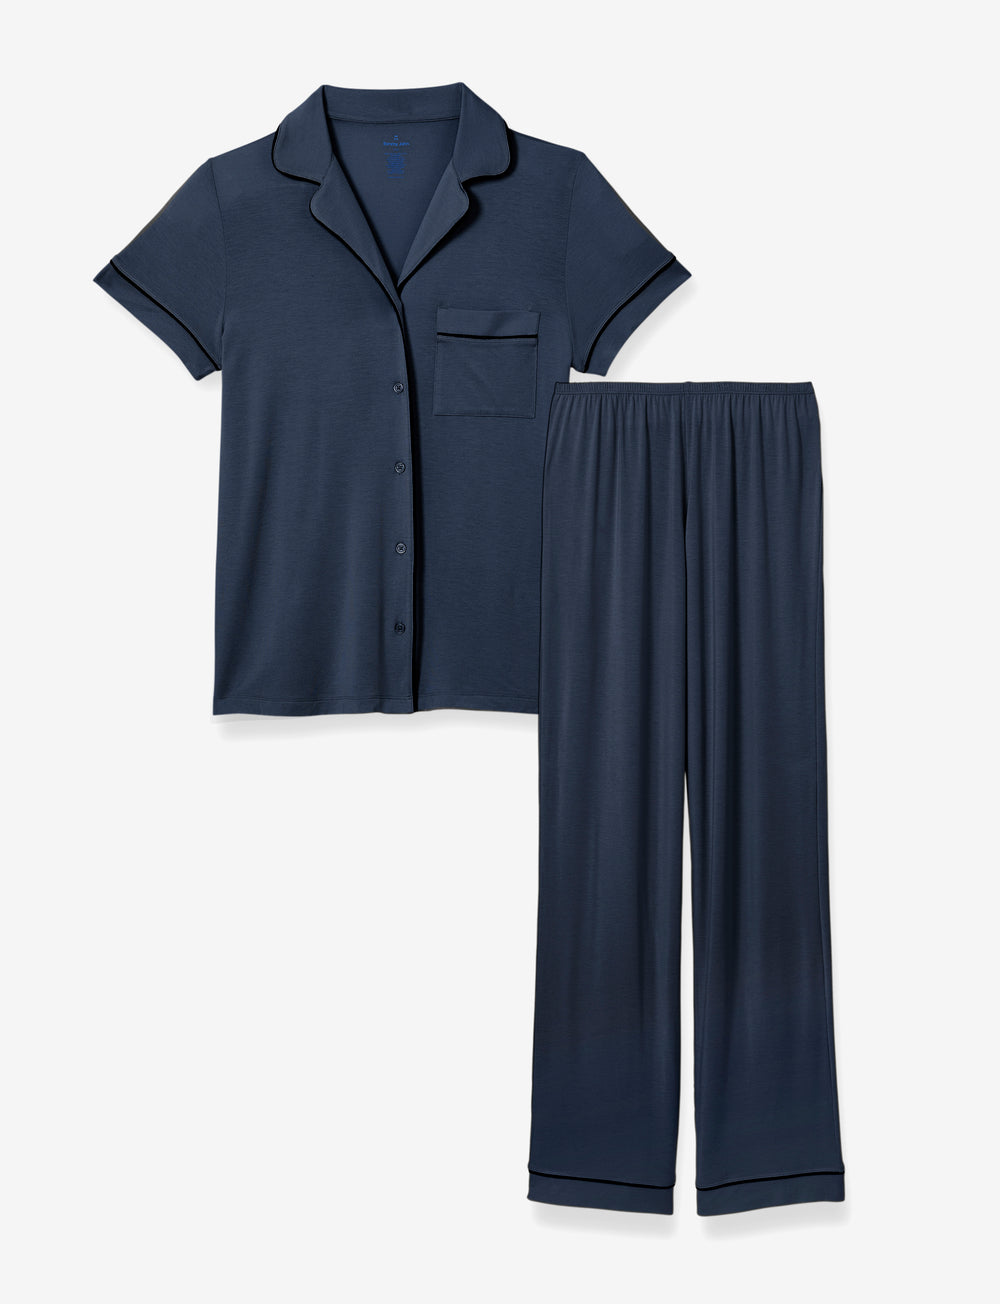 Mother's Day PJ Set Navy Top & Pant Details Image